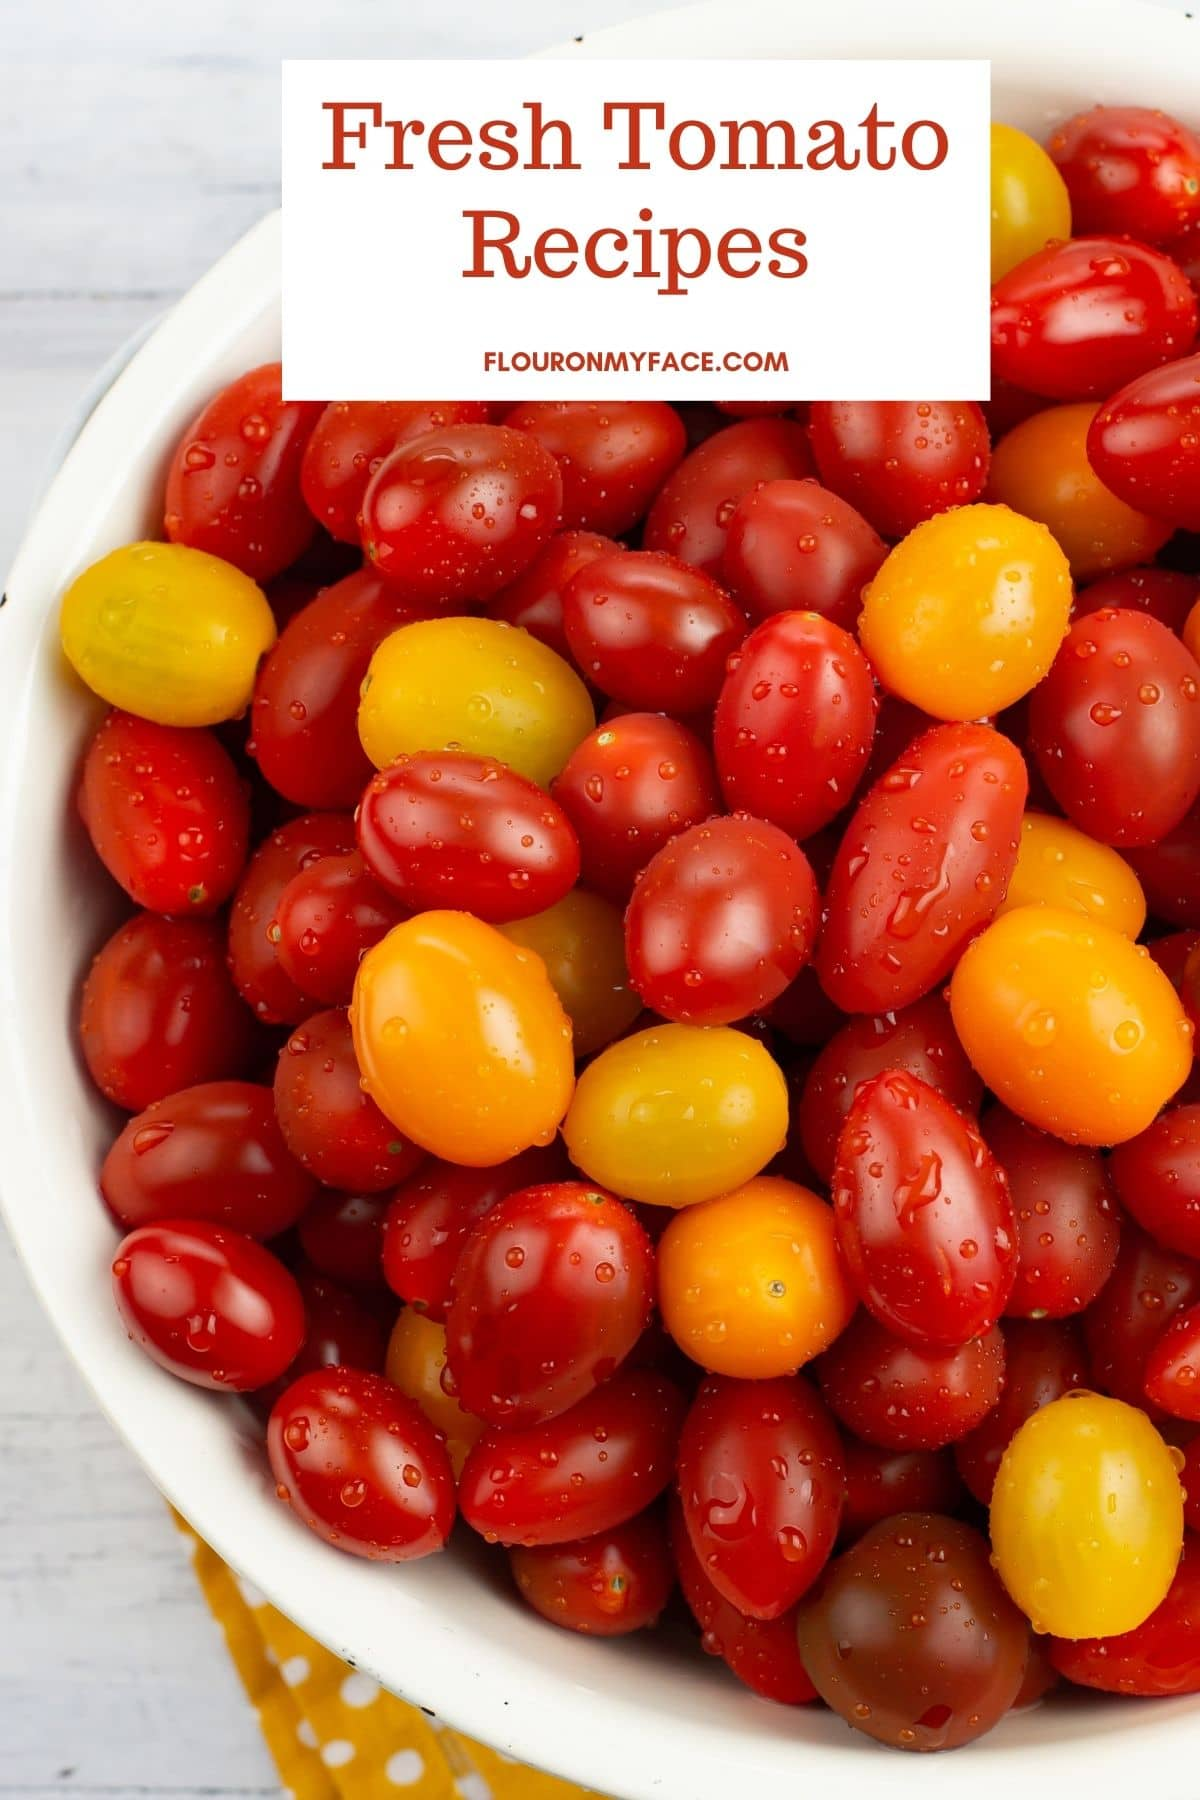 A Colander filled with cherry tomatoes.